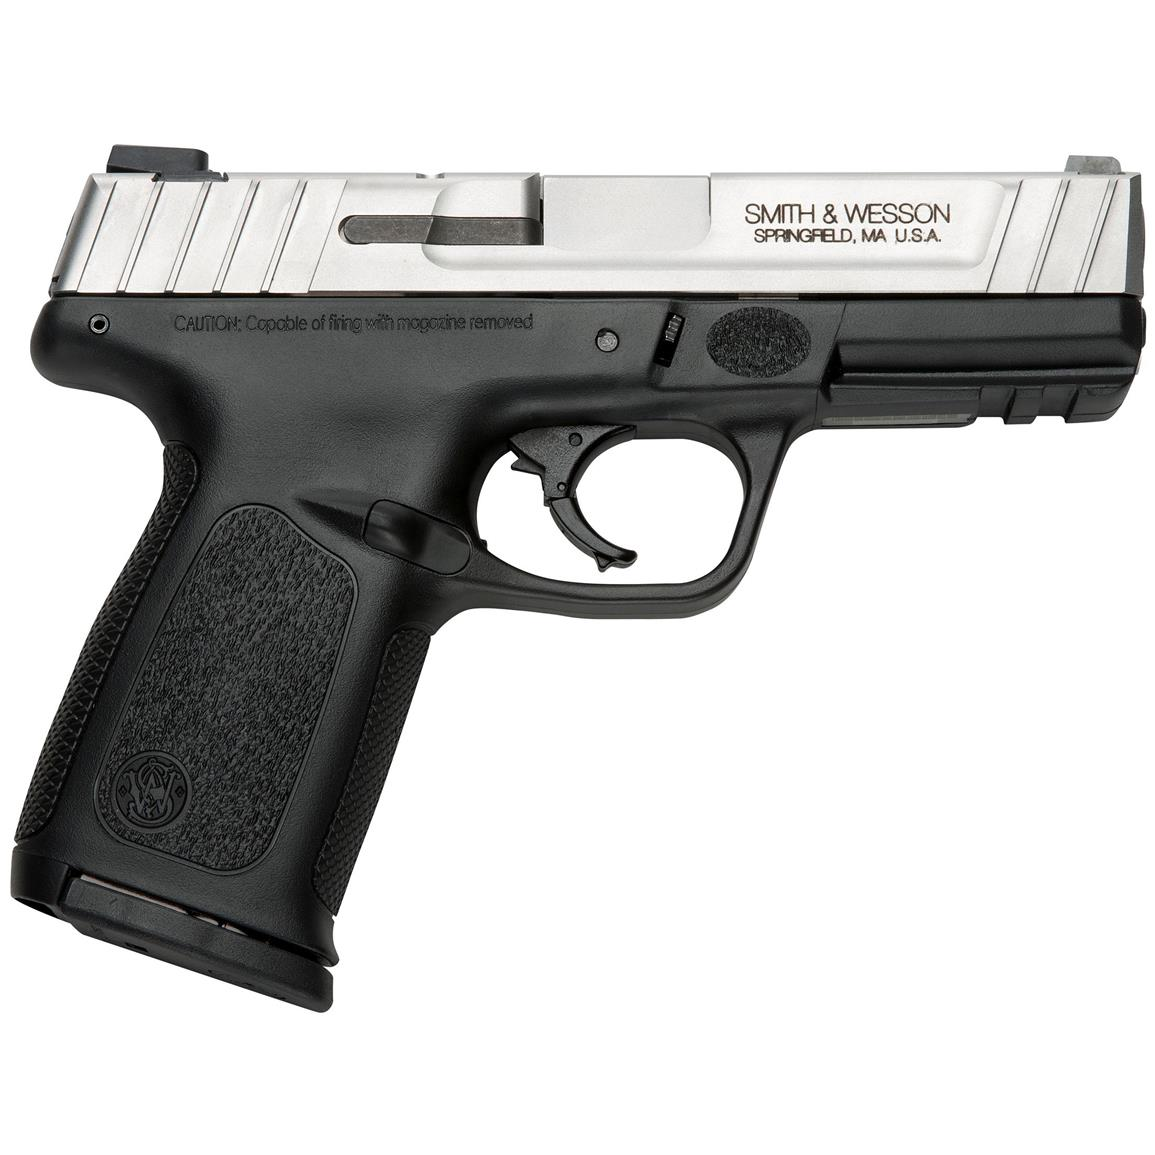 "Smith & Wesson SD9 VE, Semi-Automatic, 9mm, 4"" Barrel, 16+1 Rounds"